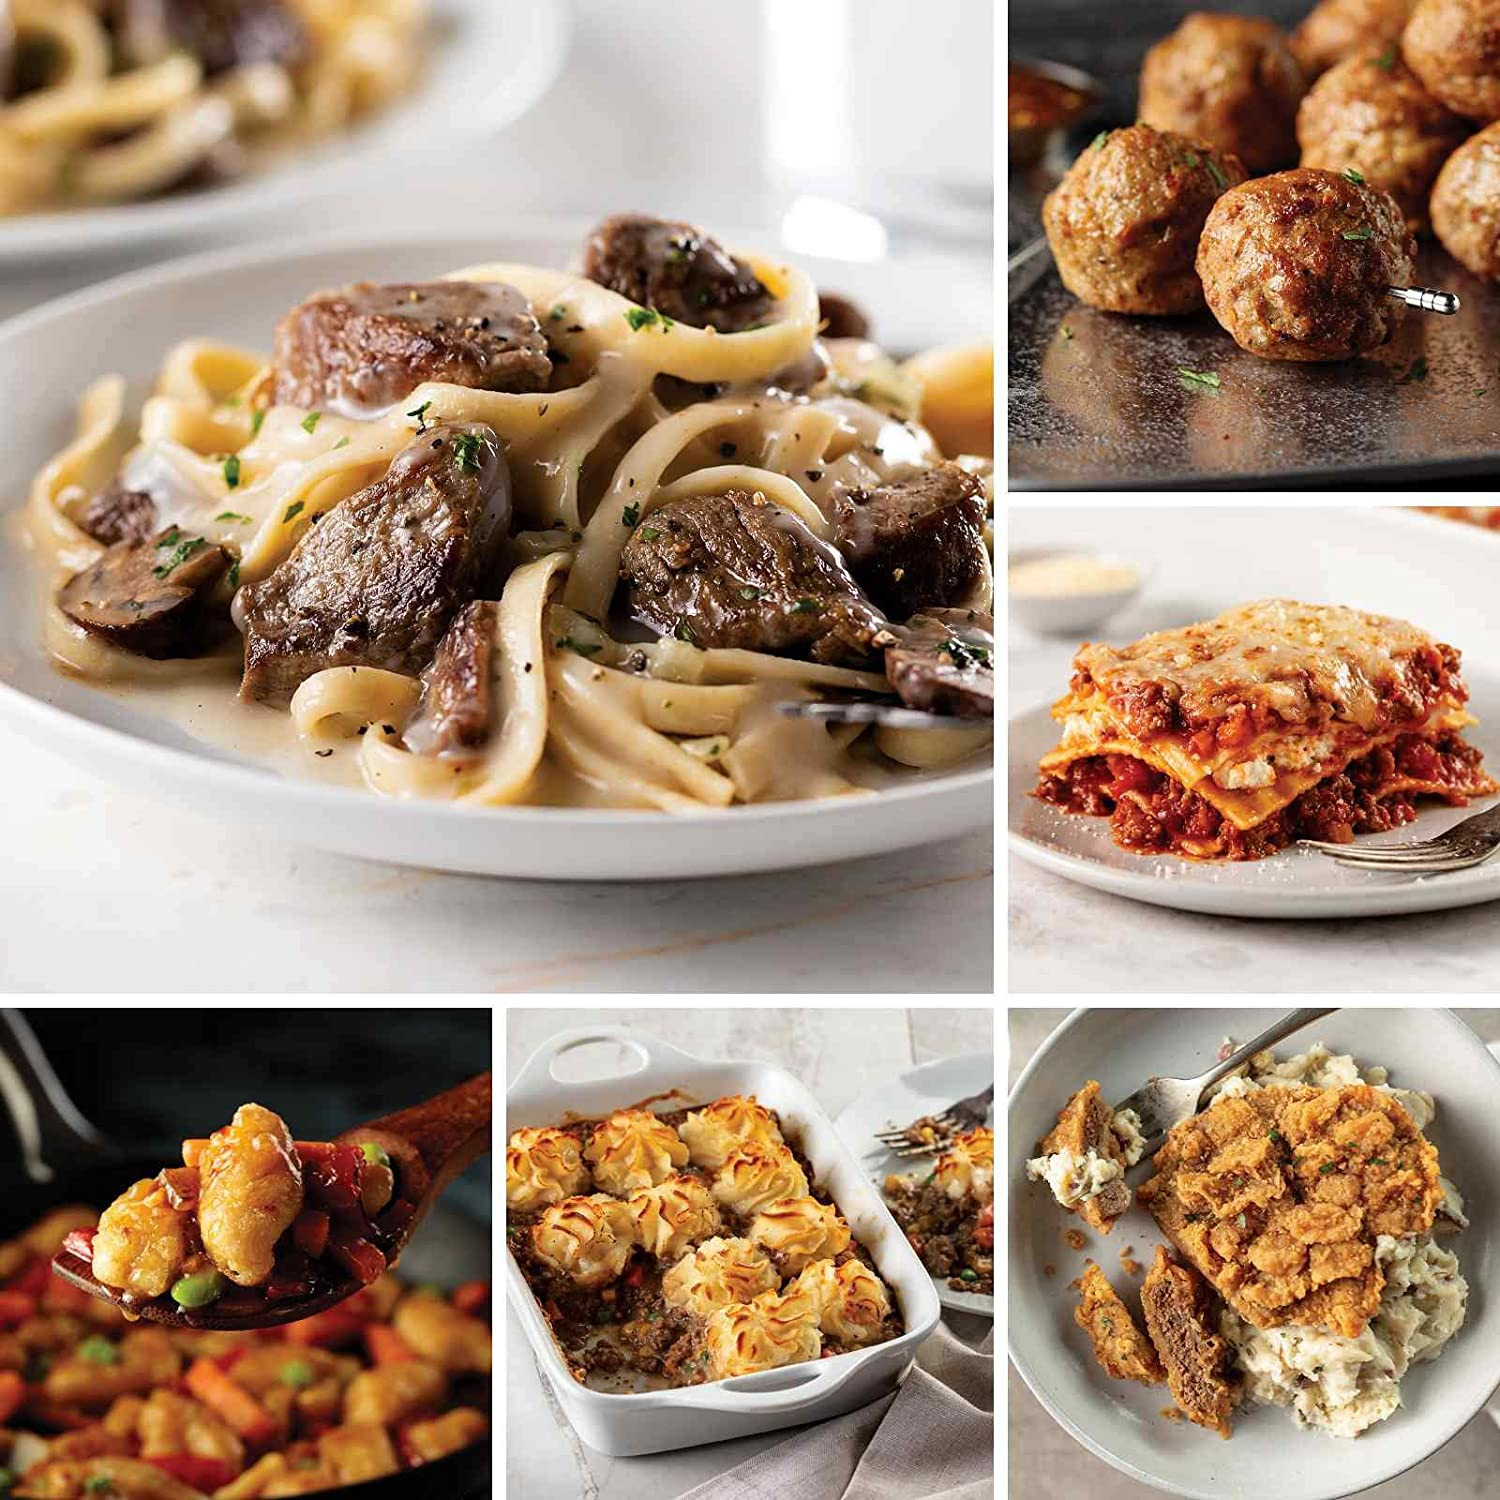 A Gift For Busy Families from Omaha Steaks (Filet Mignon Stroganoff, Skillet Meal: Tempura Orange Chicken, Beef Shepherd's Pie, Chicken Fried Steaks, Meat Lover's Lasagna, and more)